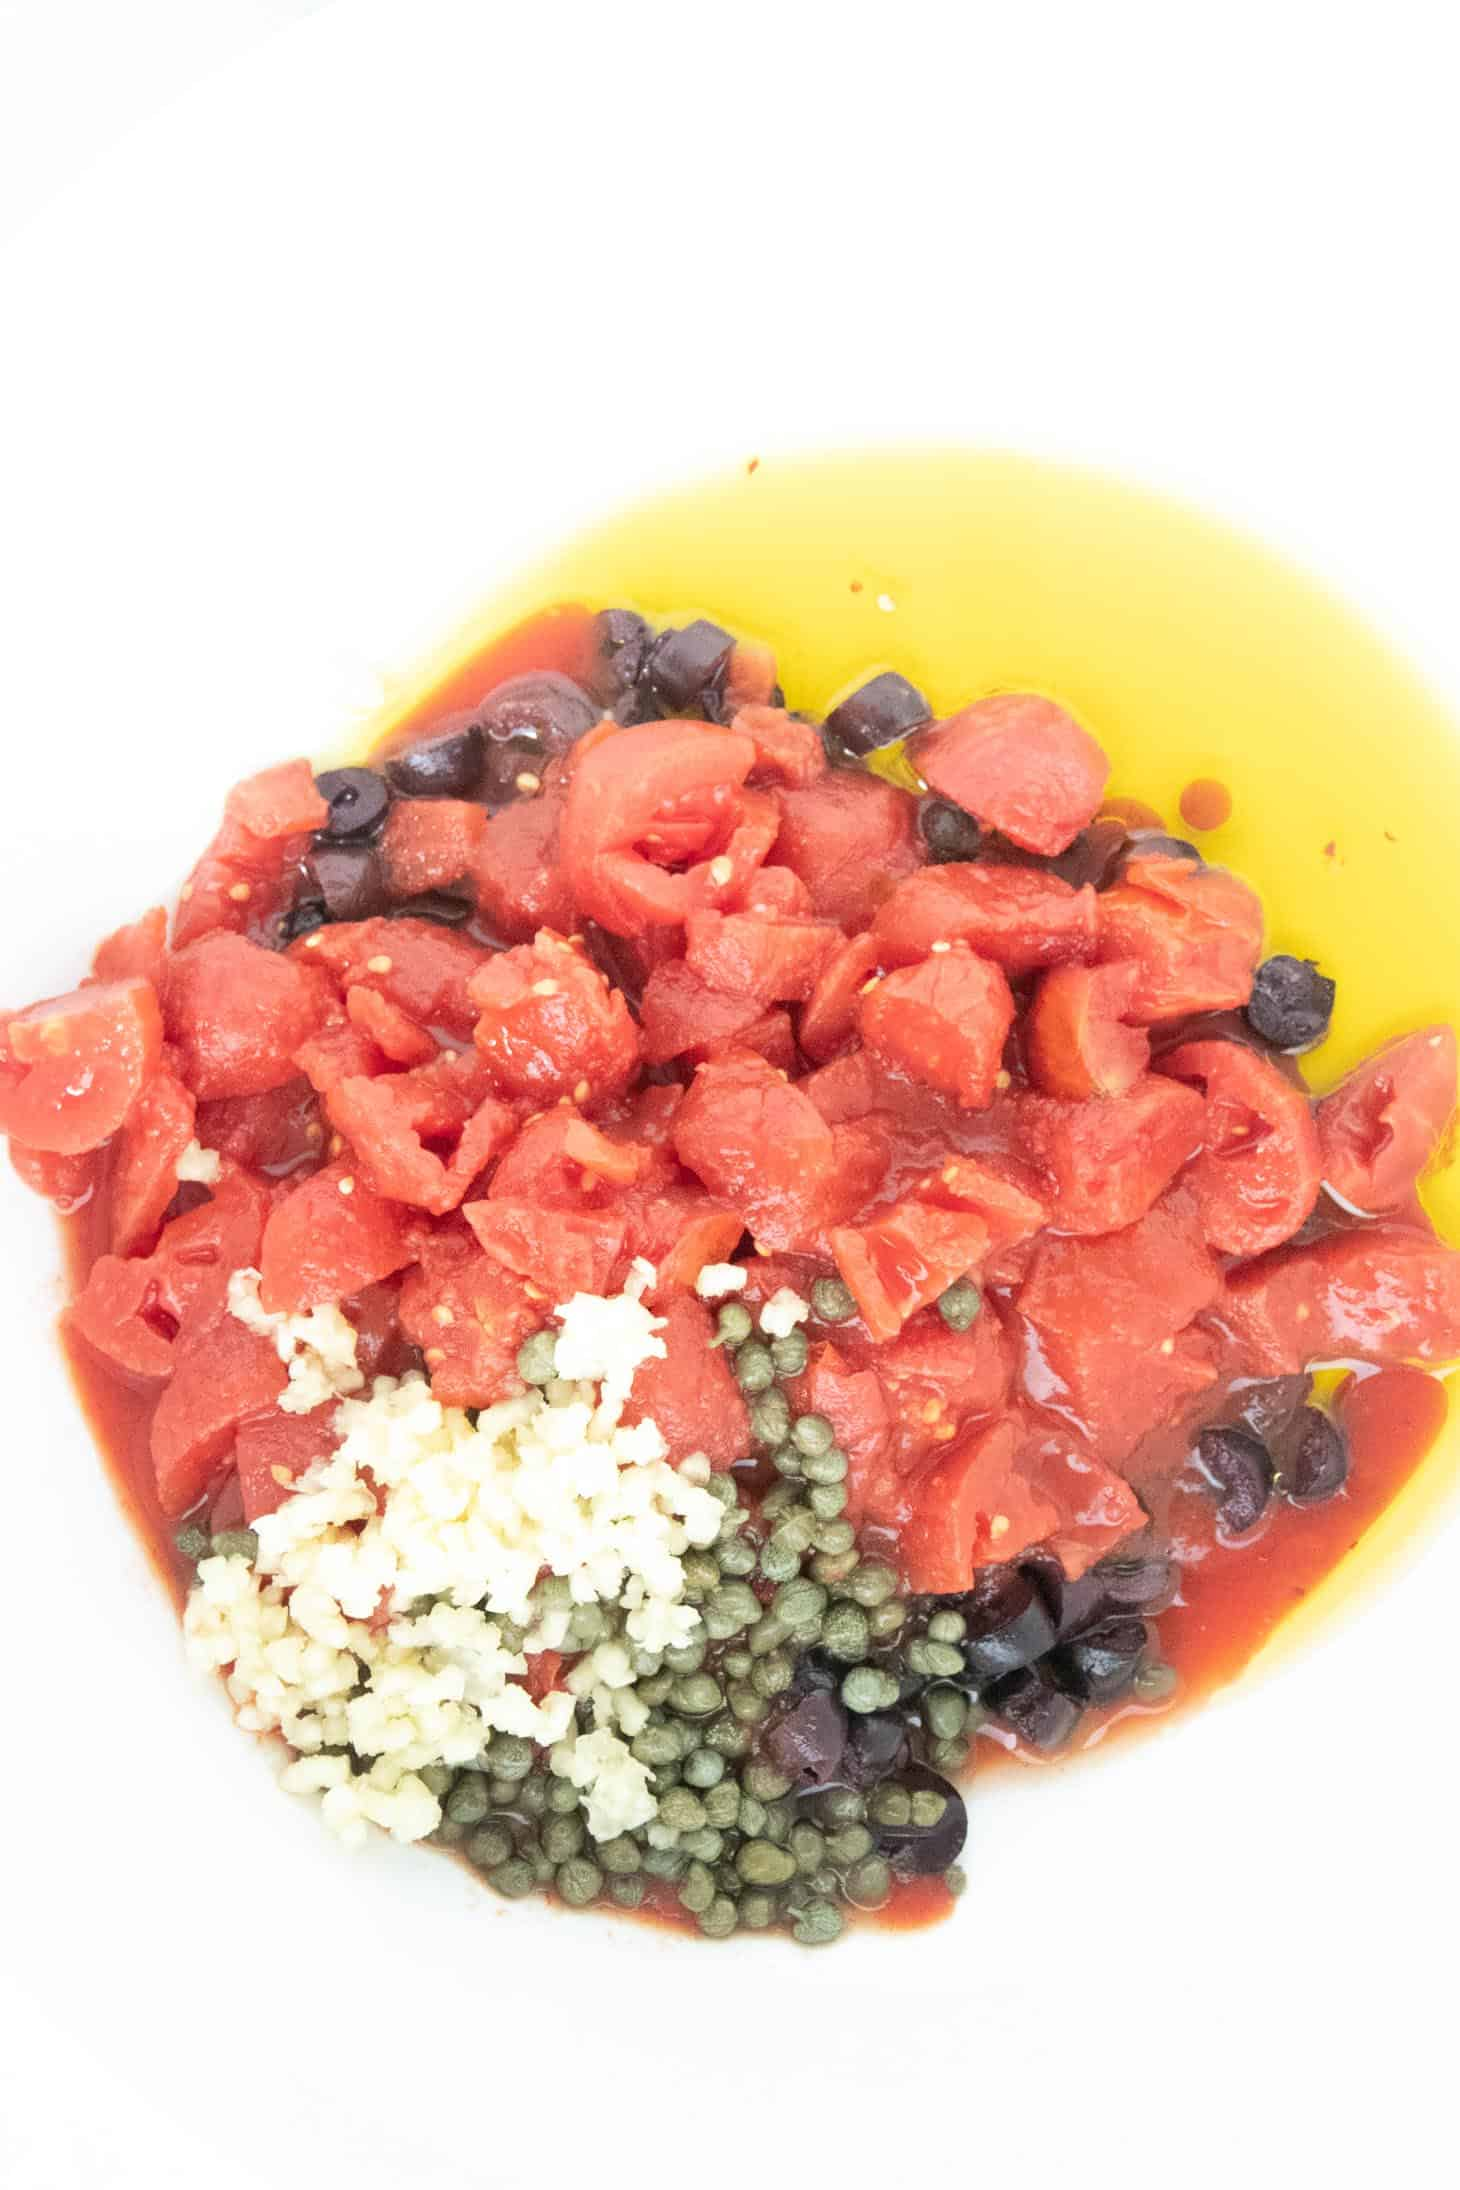 A bowl with olive oil, garlic, diced tomatoes, capers, olives